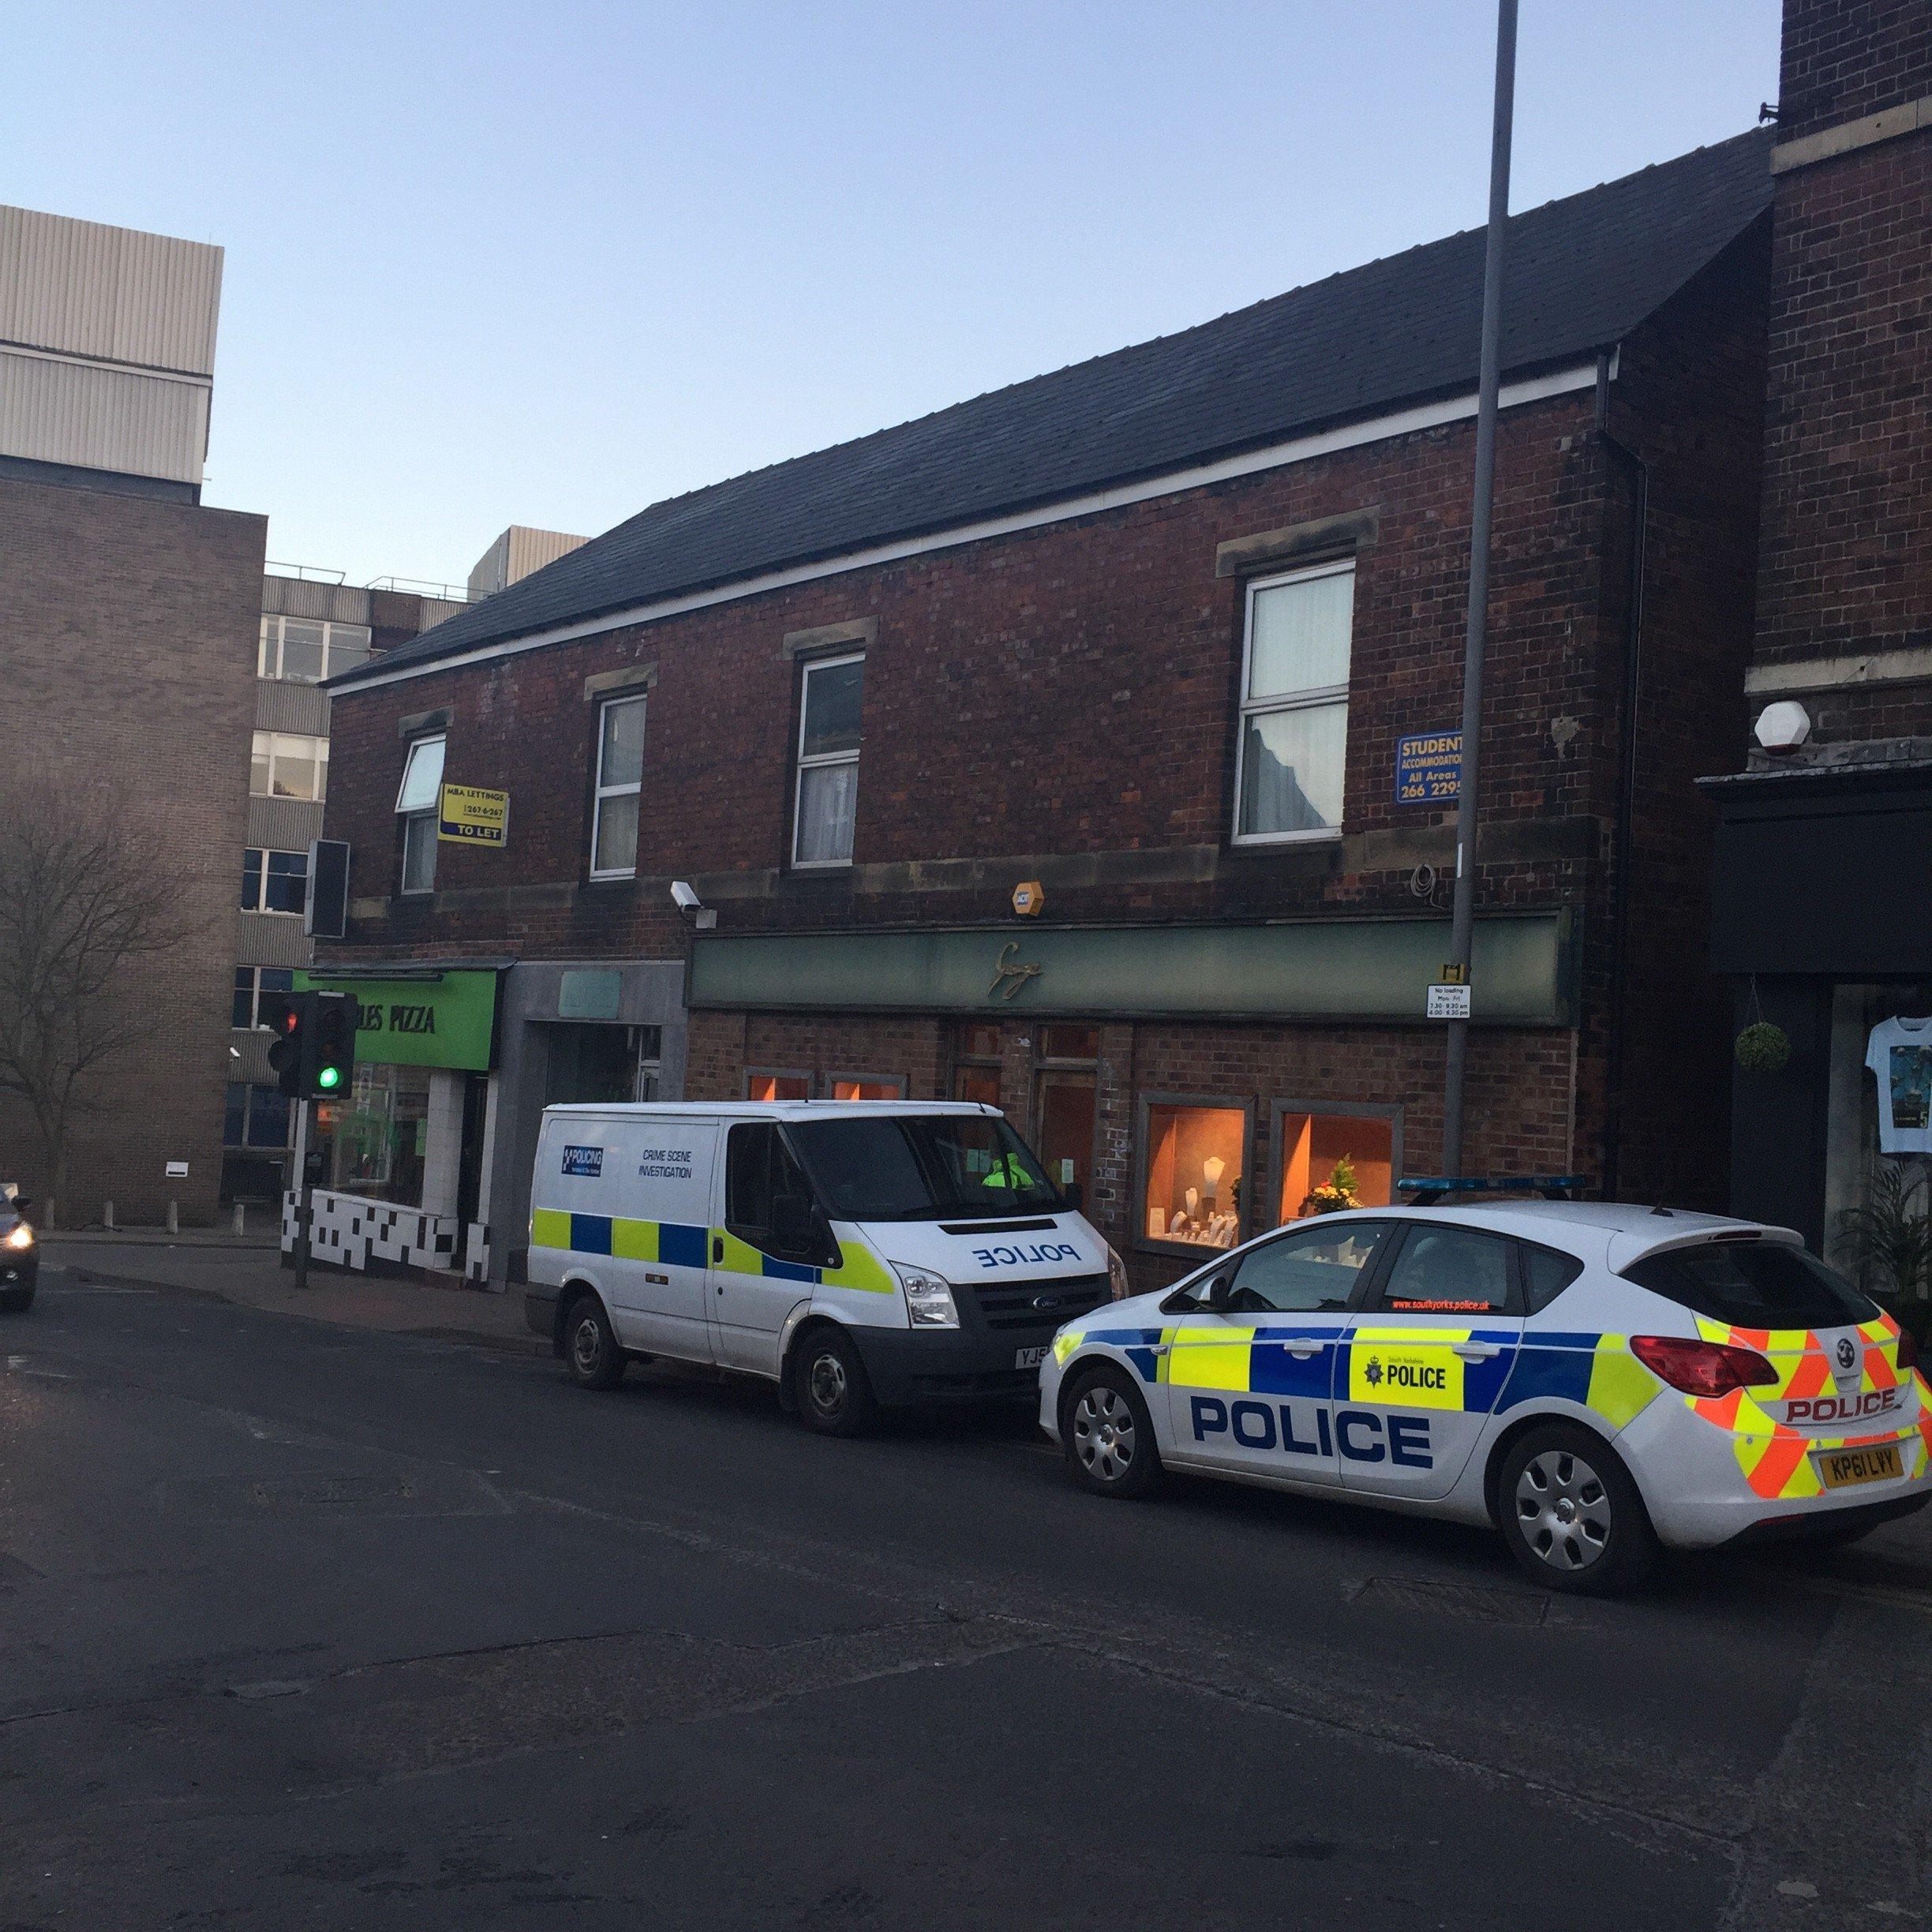 The incident is thought to have happened at George Jewellers, Broomhill